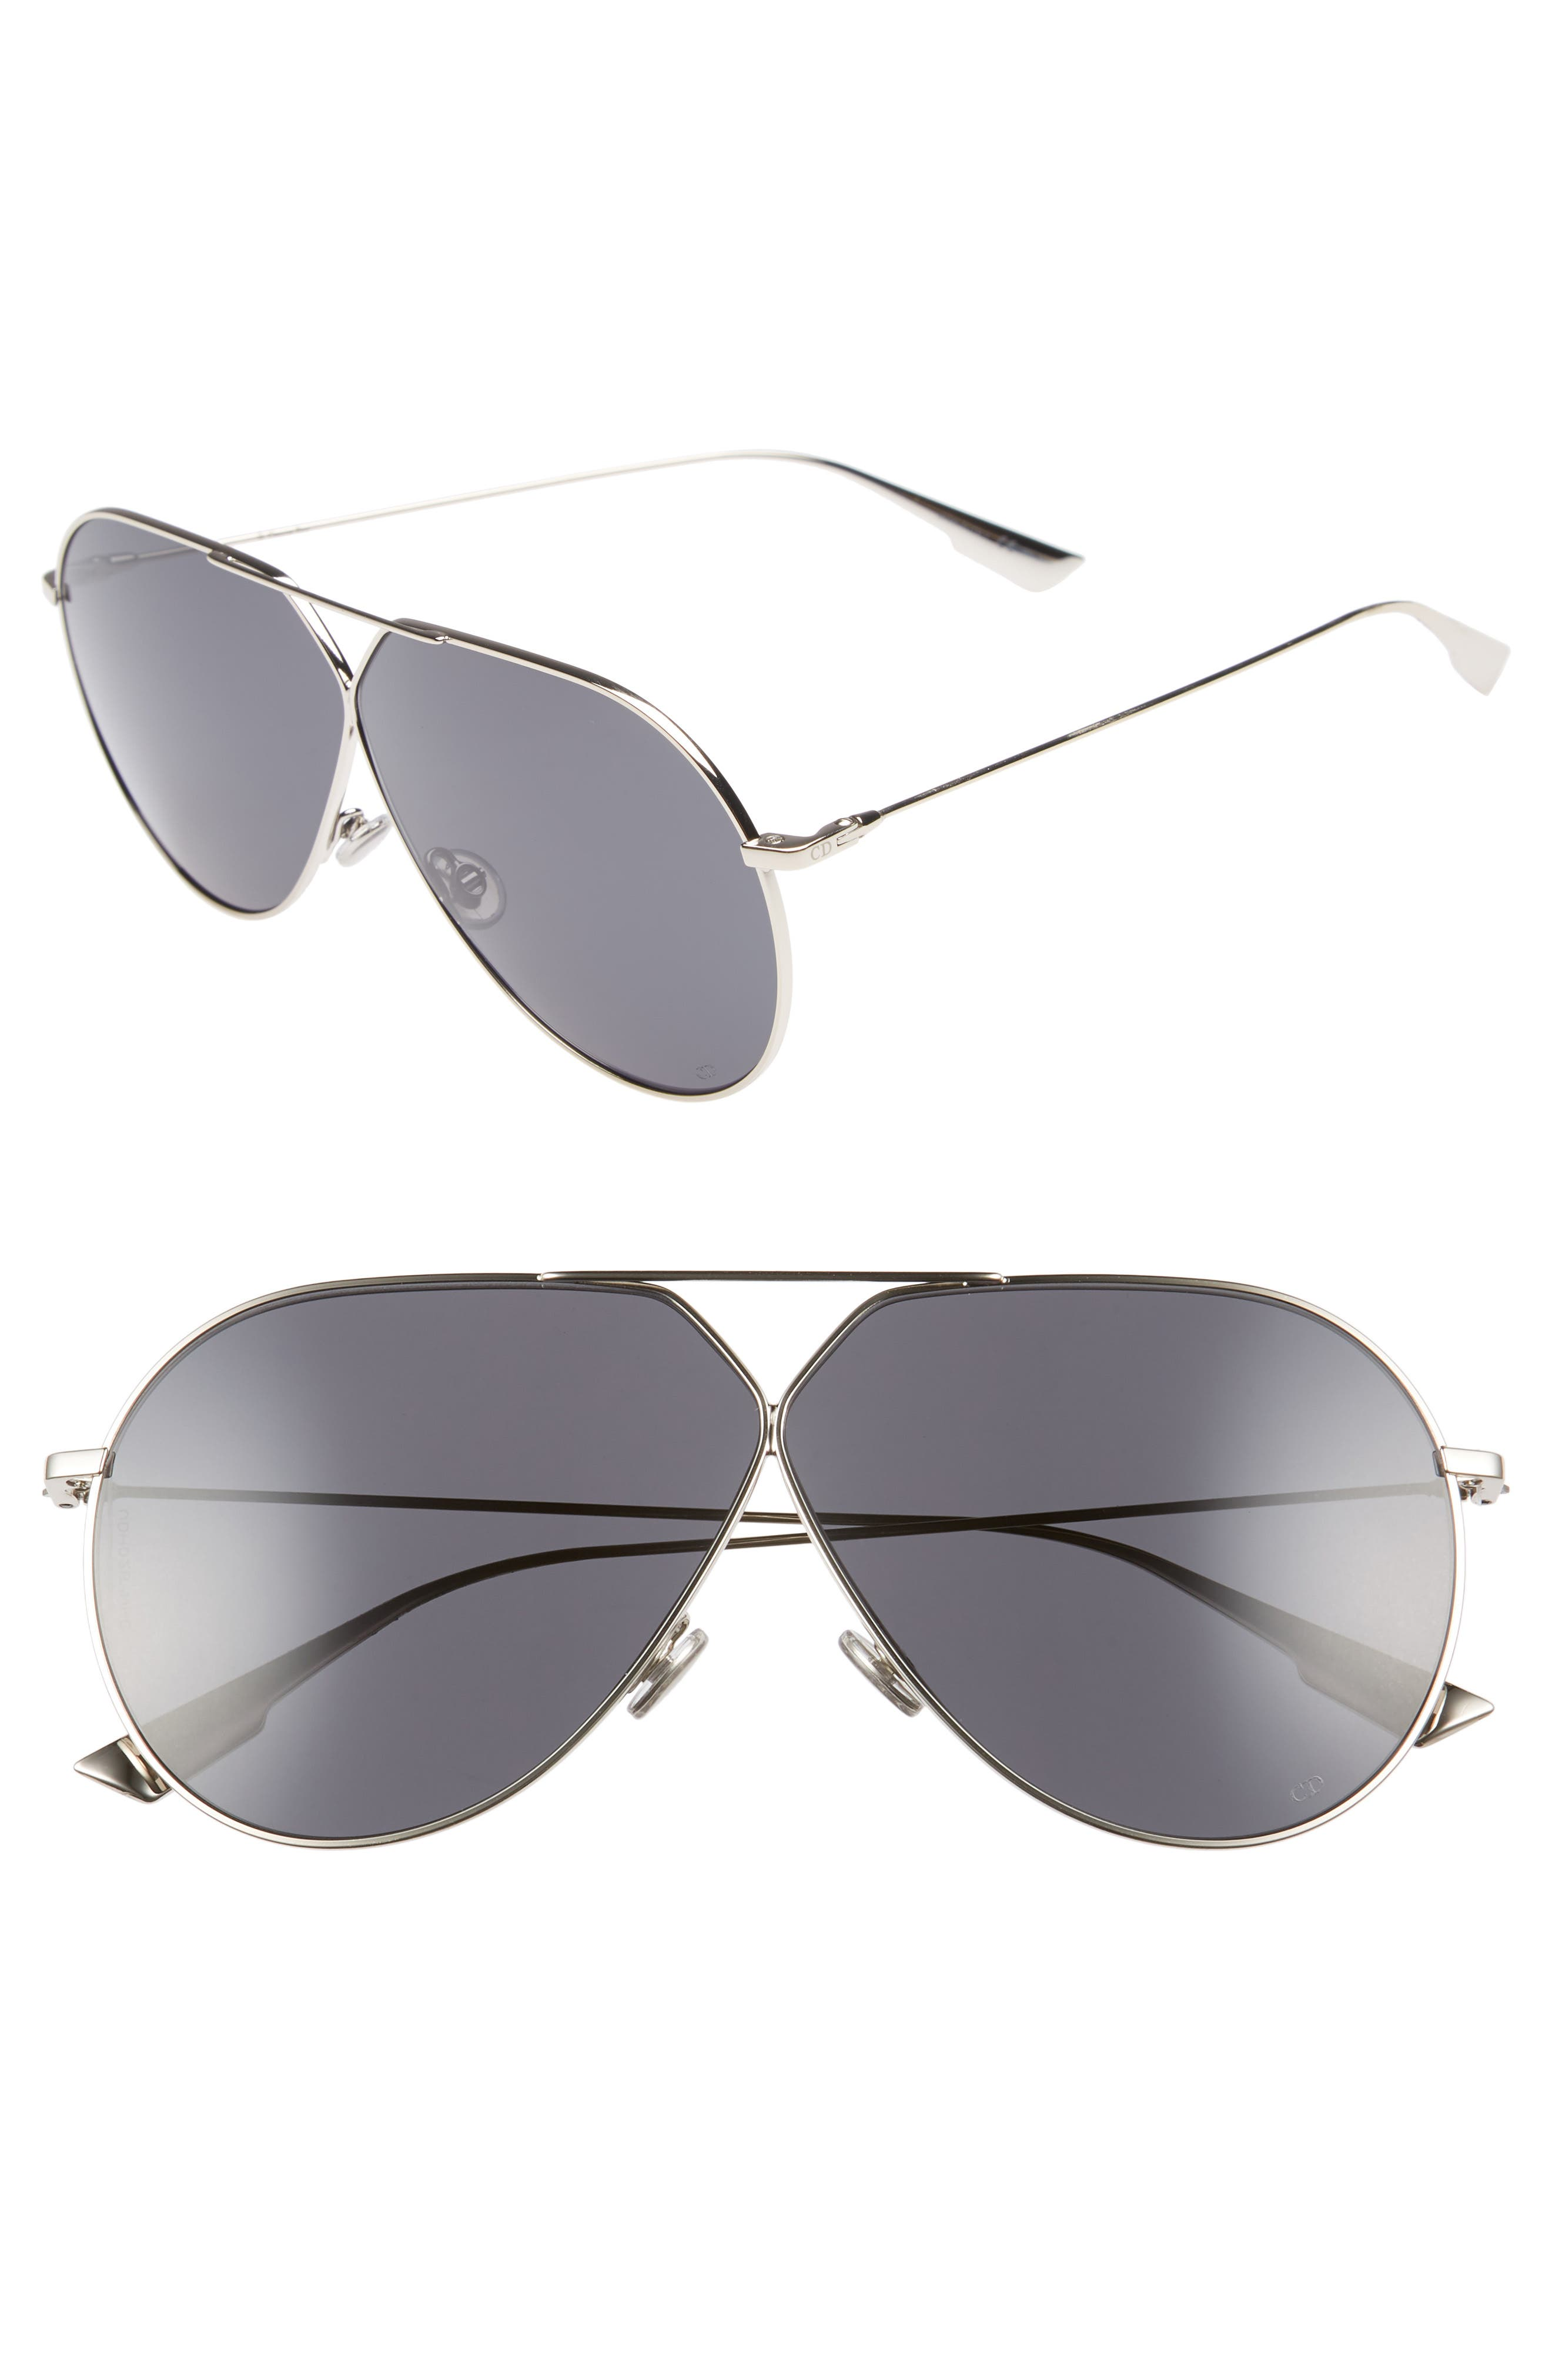 Christian Dior 65Mm Aviator Sunglasses -